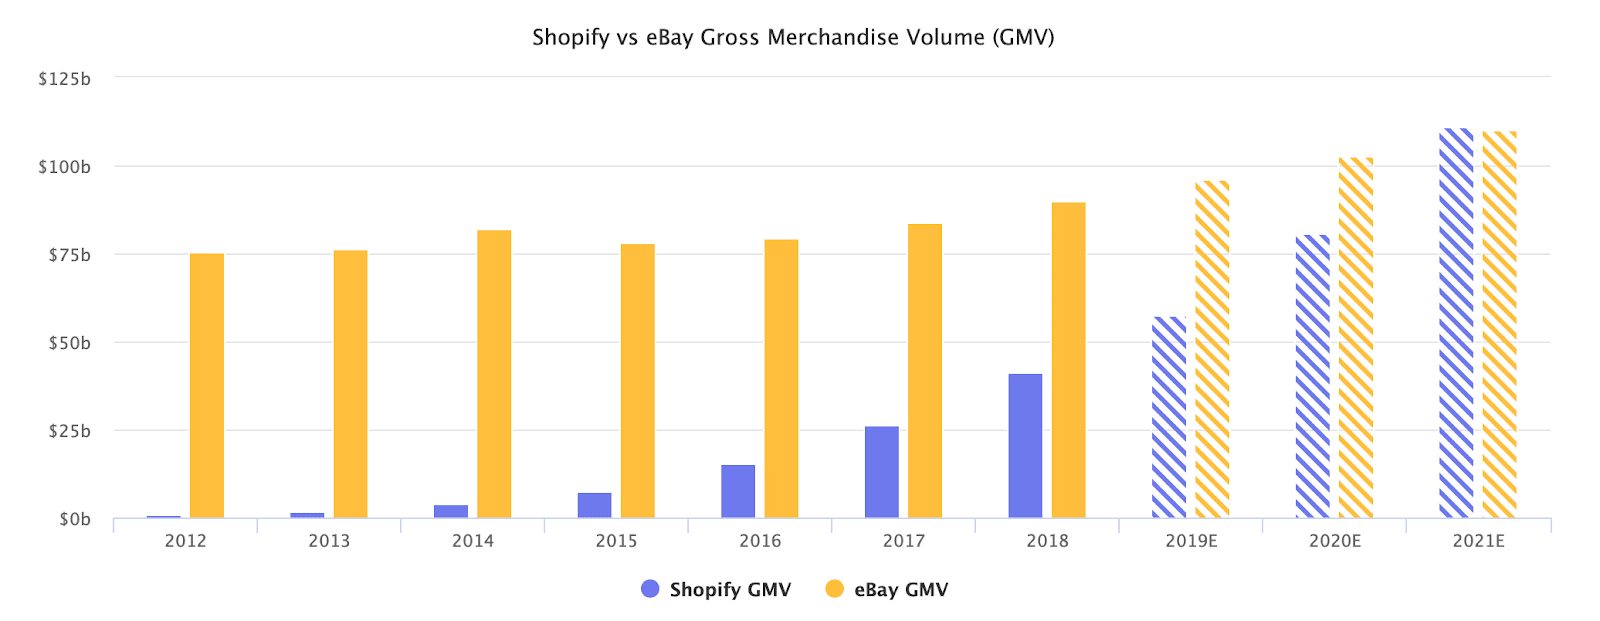 Shopify vs eBay Gross Merchandise Volume (GMV)